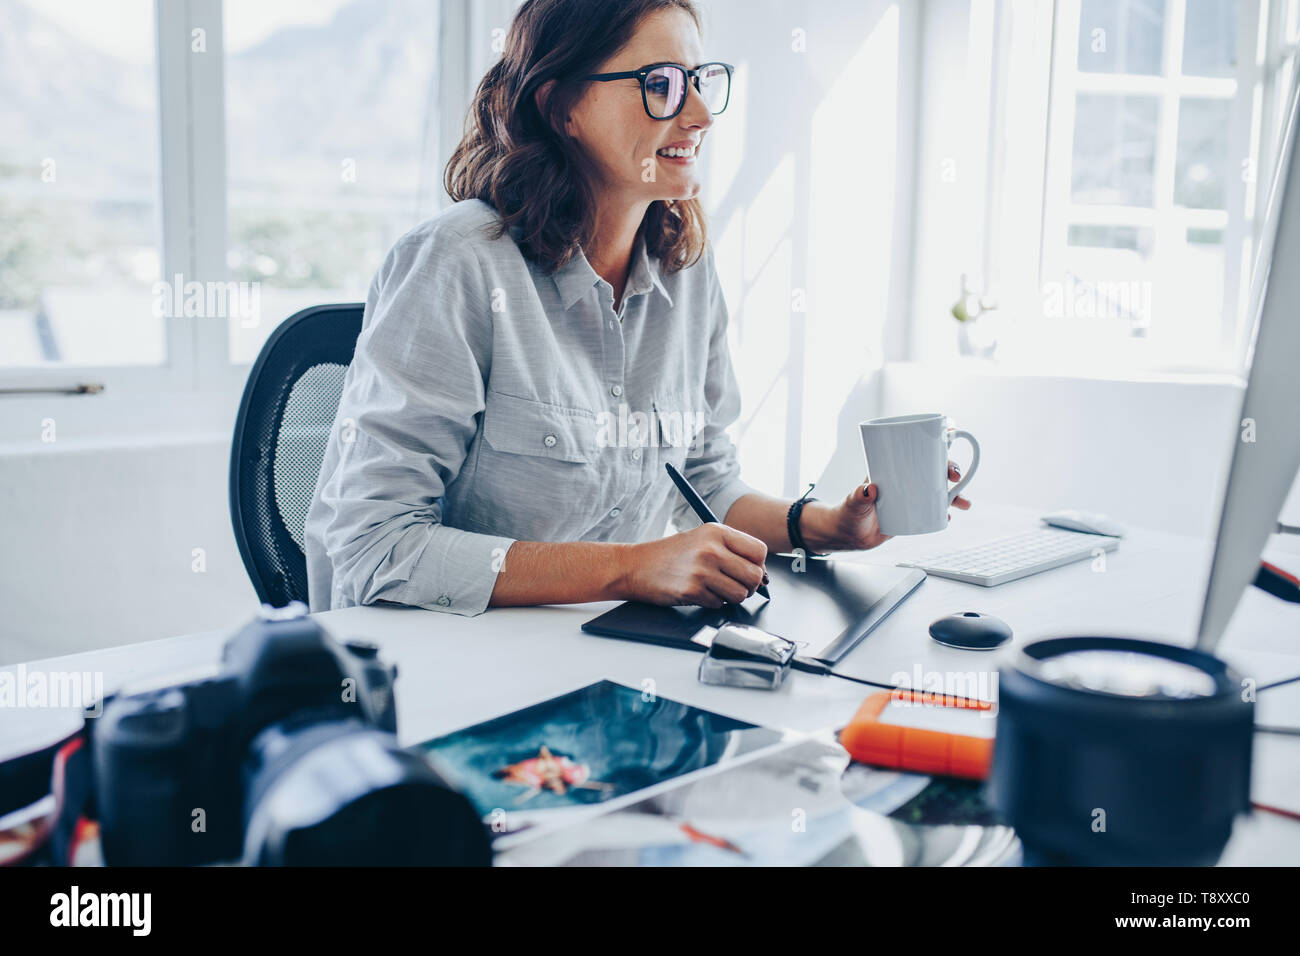 Young woman sitting at desk editing images on computer. Female photographer retouching photos in office using graphic tablet and digital pen. Stock Photo